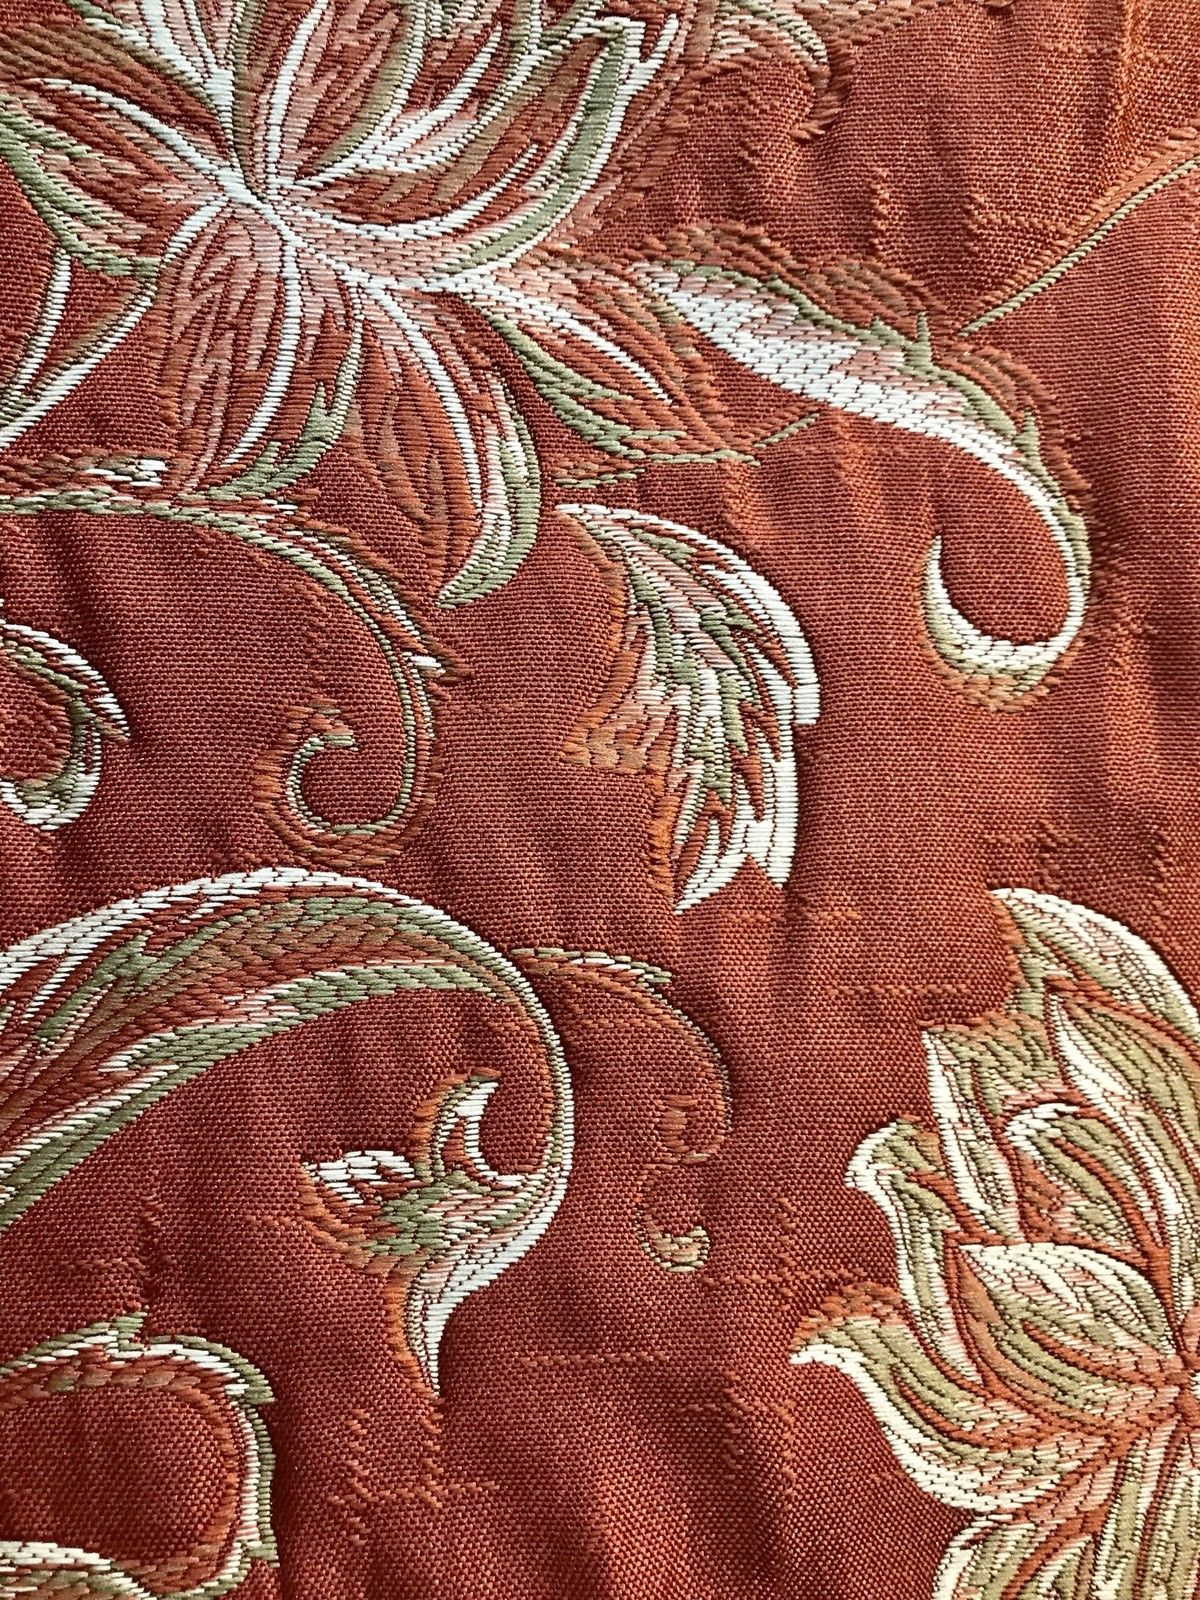 Swatch 4 X 7 Quilted Brocade Floral Upholstery Fabric